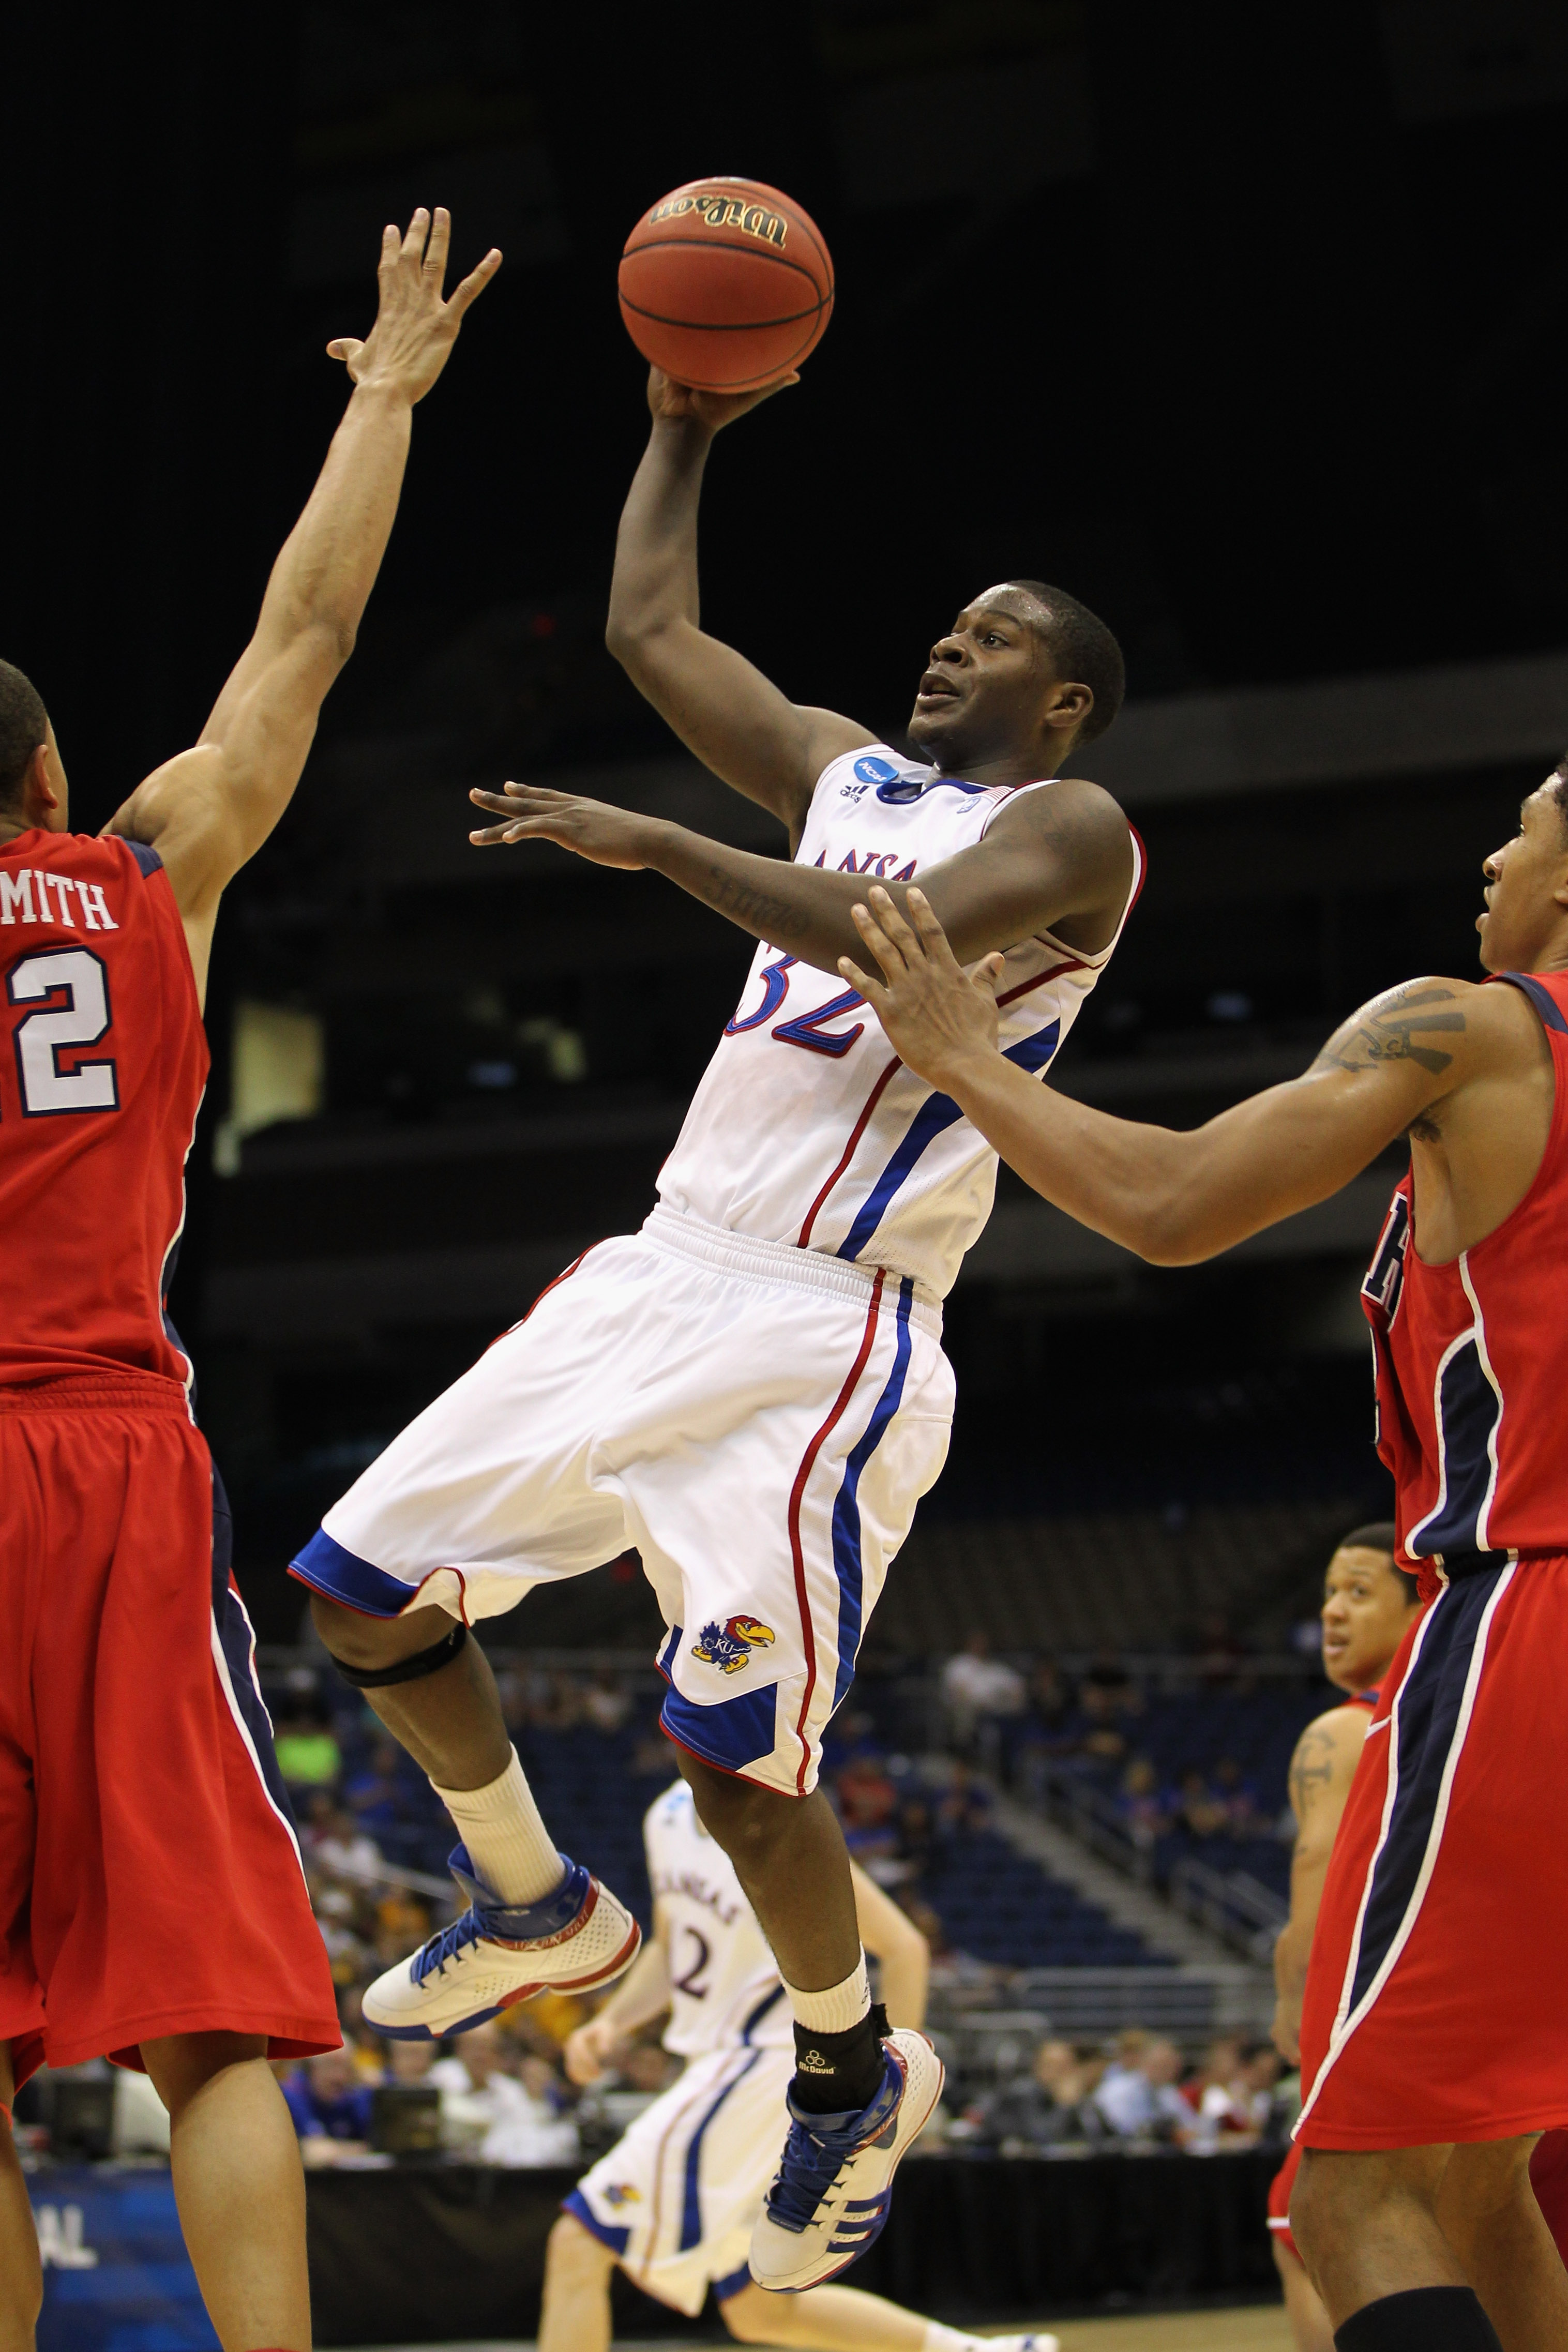 SAN ANTONIO, TX - MARCH 25:  Josh Selby #32 of the Kansas Jayhawks puts up a shot against the Richmond Spiders during the southwest regional of the 2011 NCAA men's basketball tournament at the Alamodome on March 25, 2011 in San Antonio, Texas.  (Photo by